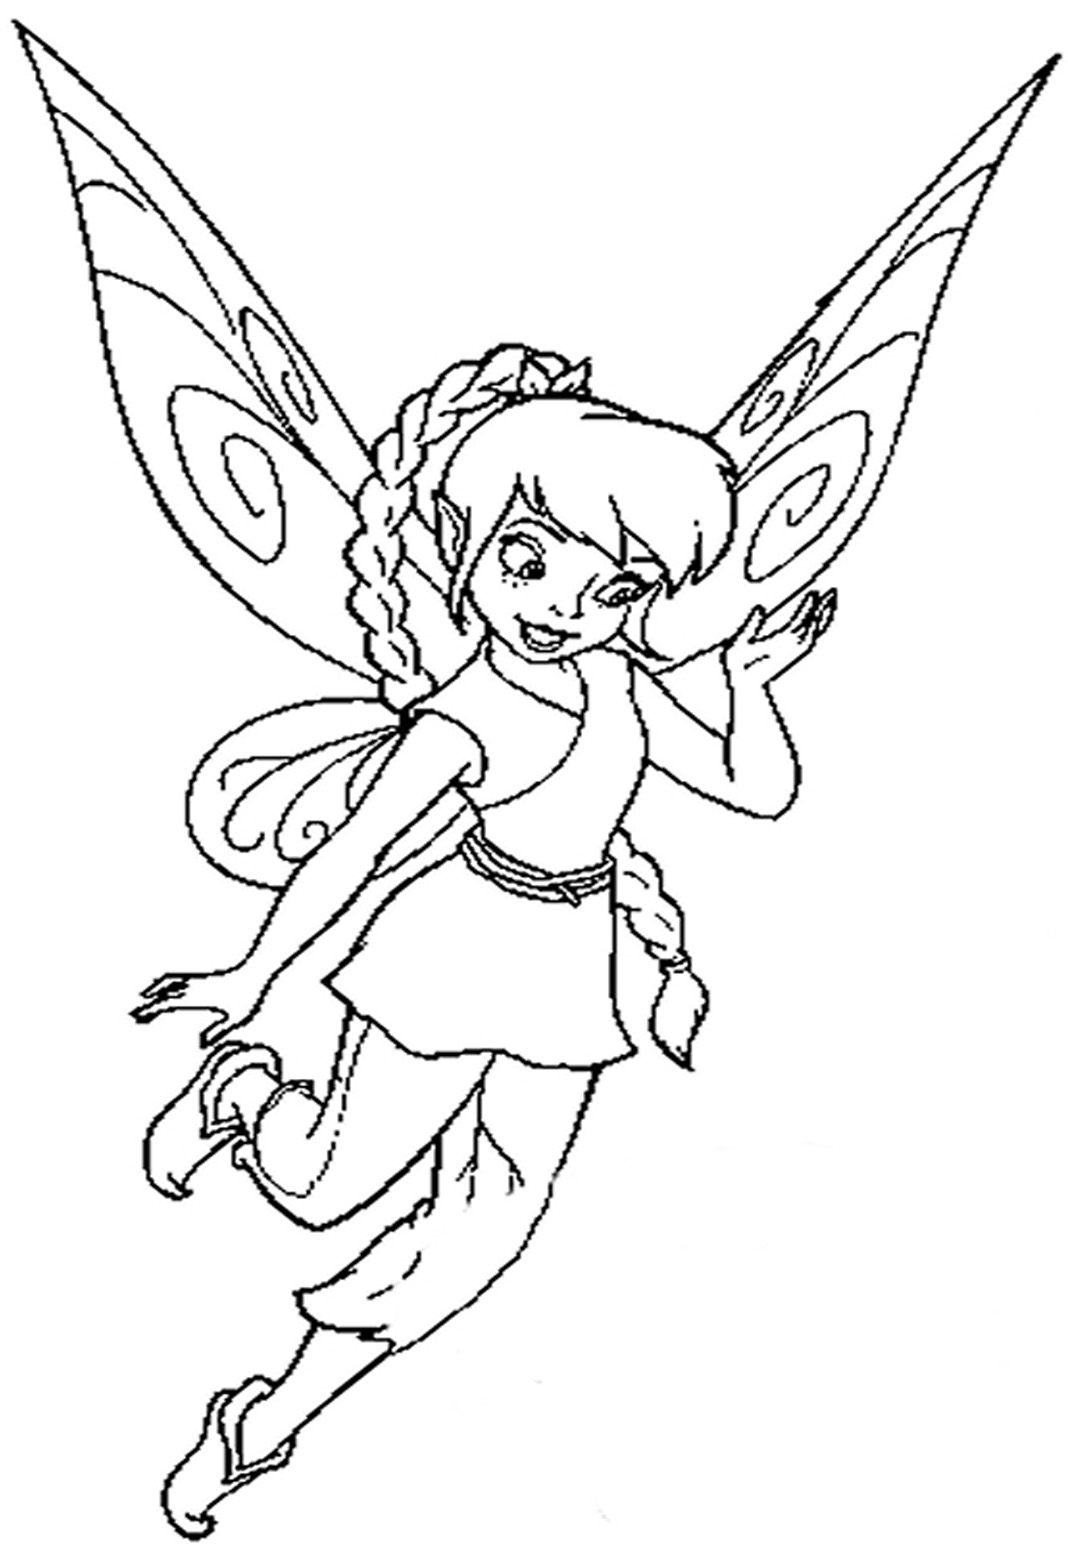 fairies coloring pages free printable disney fairies fawn coloring sheet coloring pages fairies